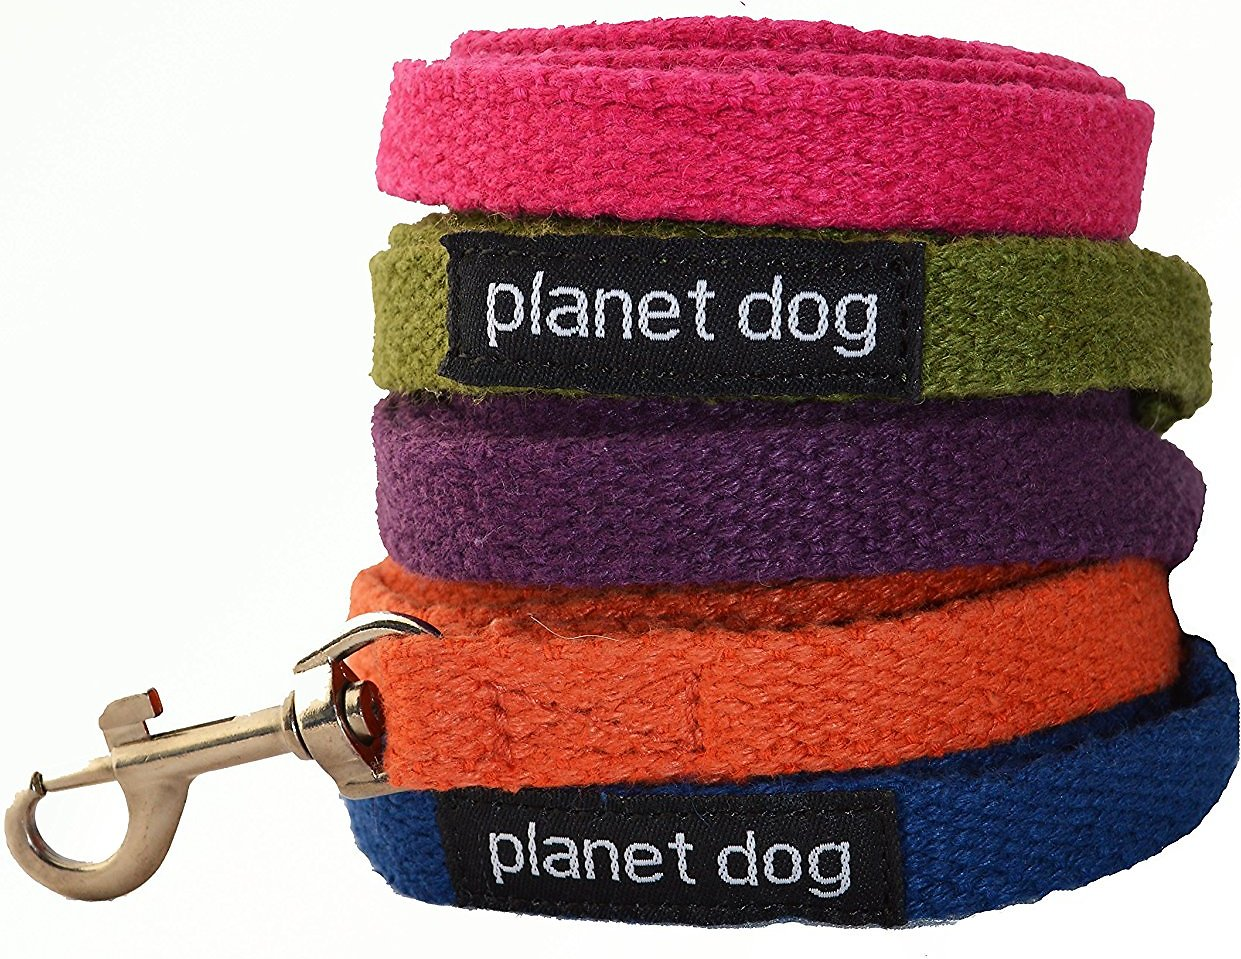 Planet Dog Hemp Dog Leash with Fleece-Lined Handle, Apple Green, Regular